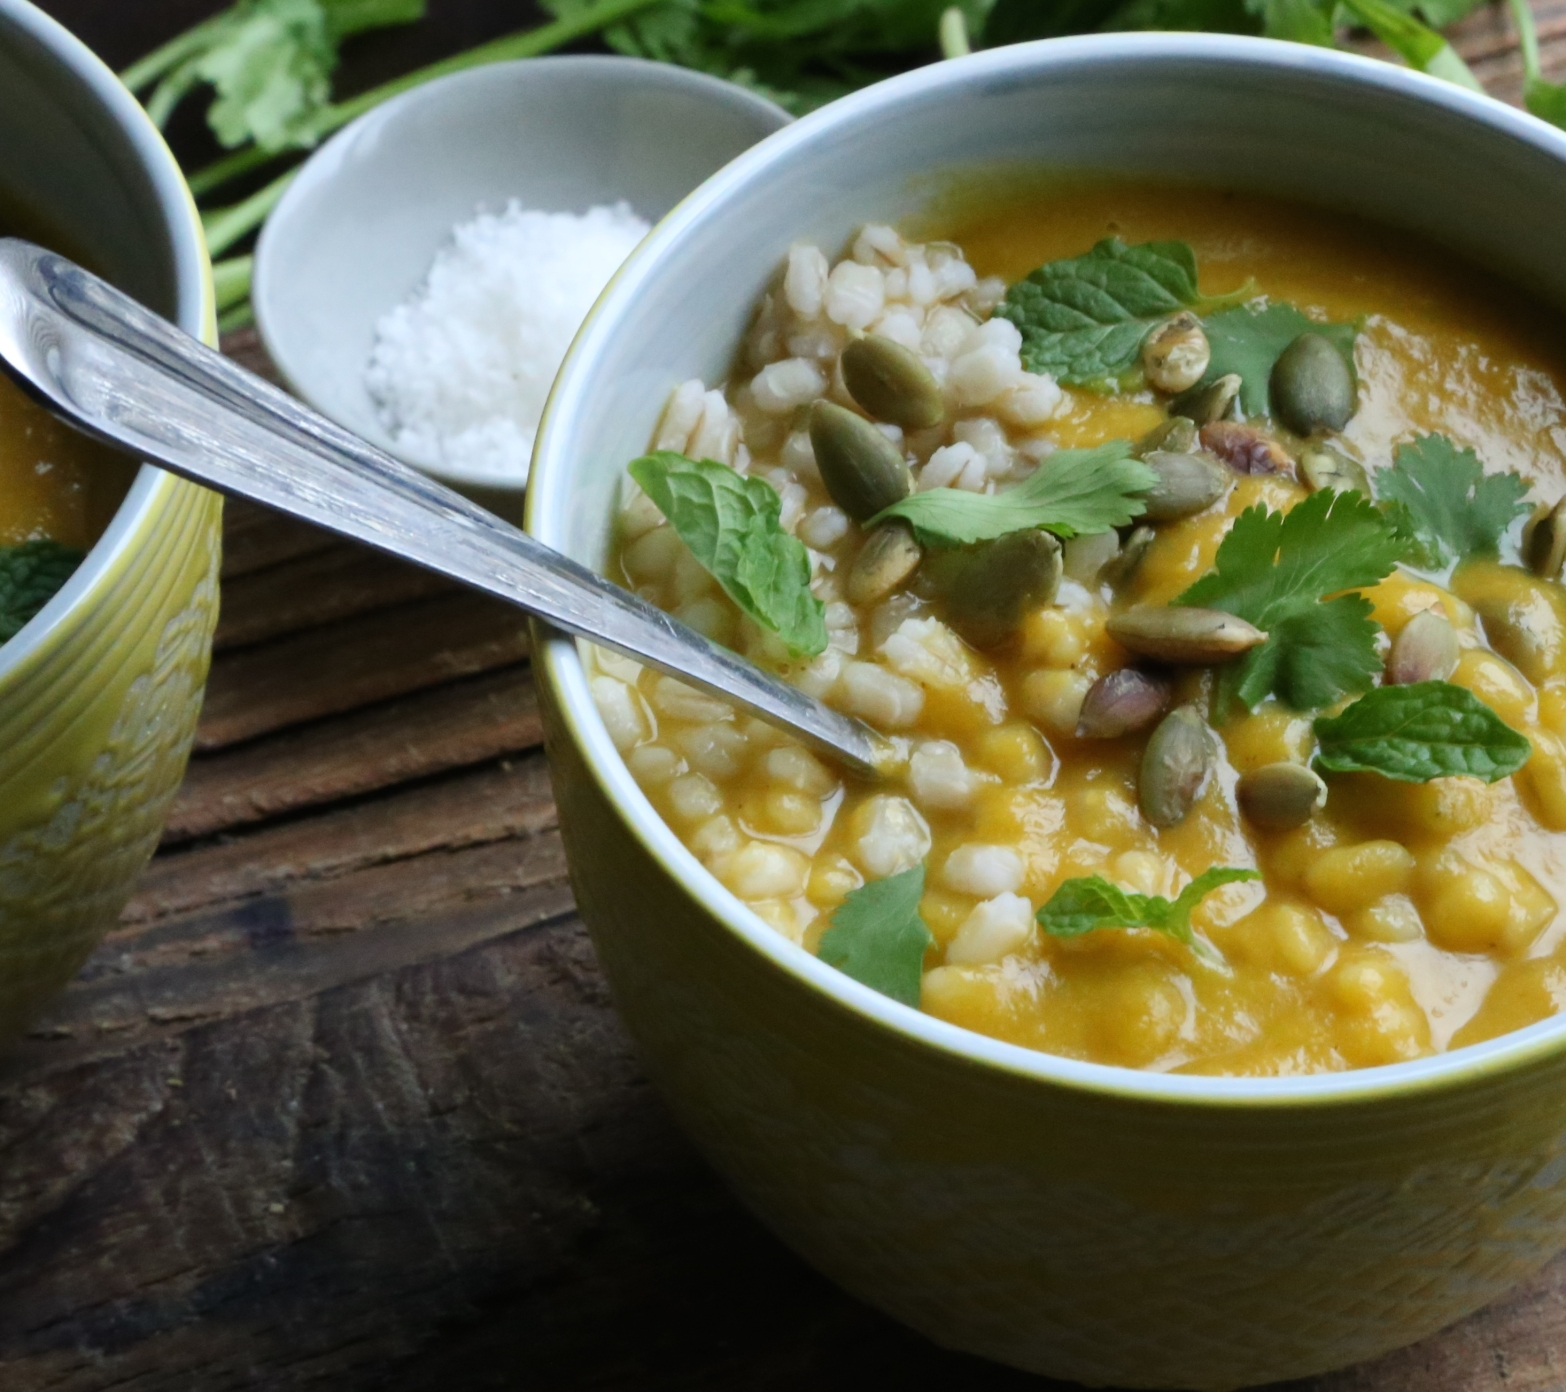 Curried Carrot and Apple Soup with Barley